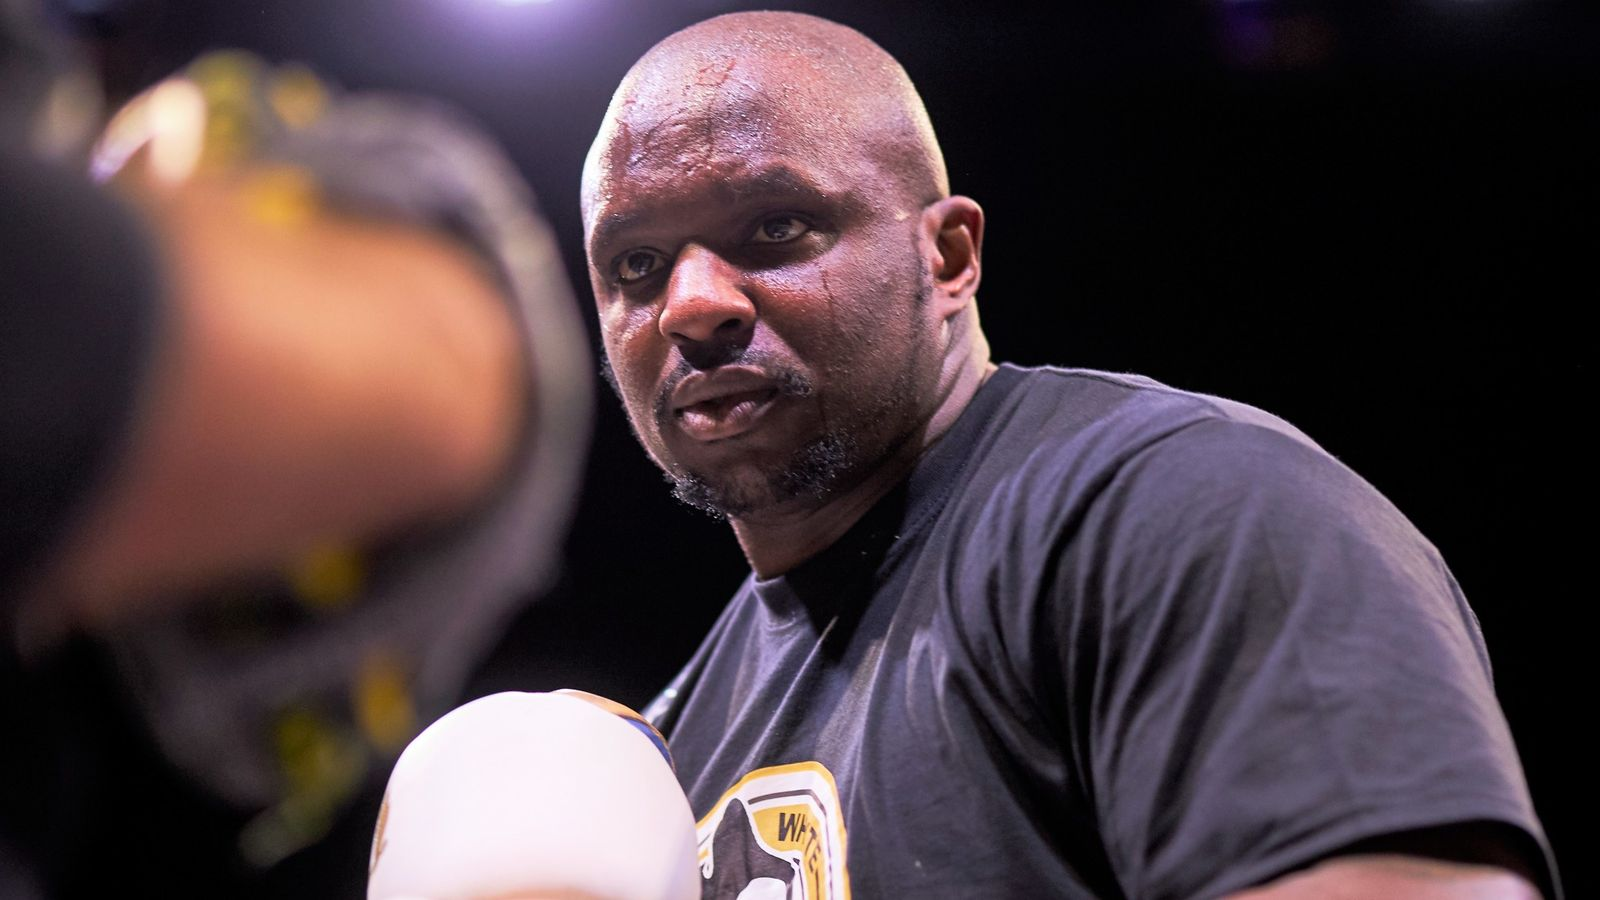 Wilder vs Fury 2: Dillian Whyte angrily responds to Deontay Wilder